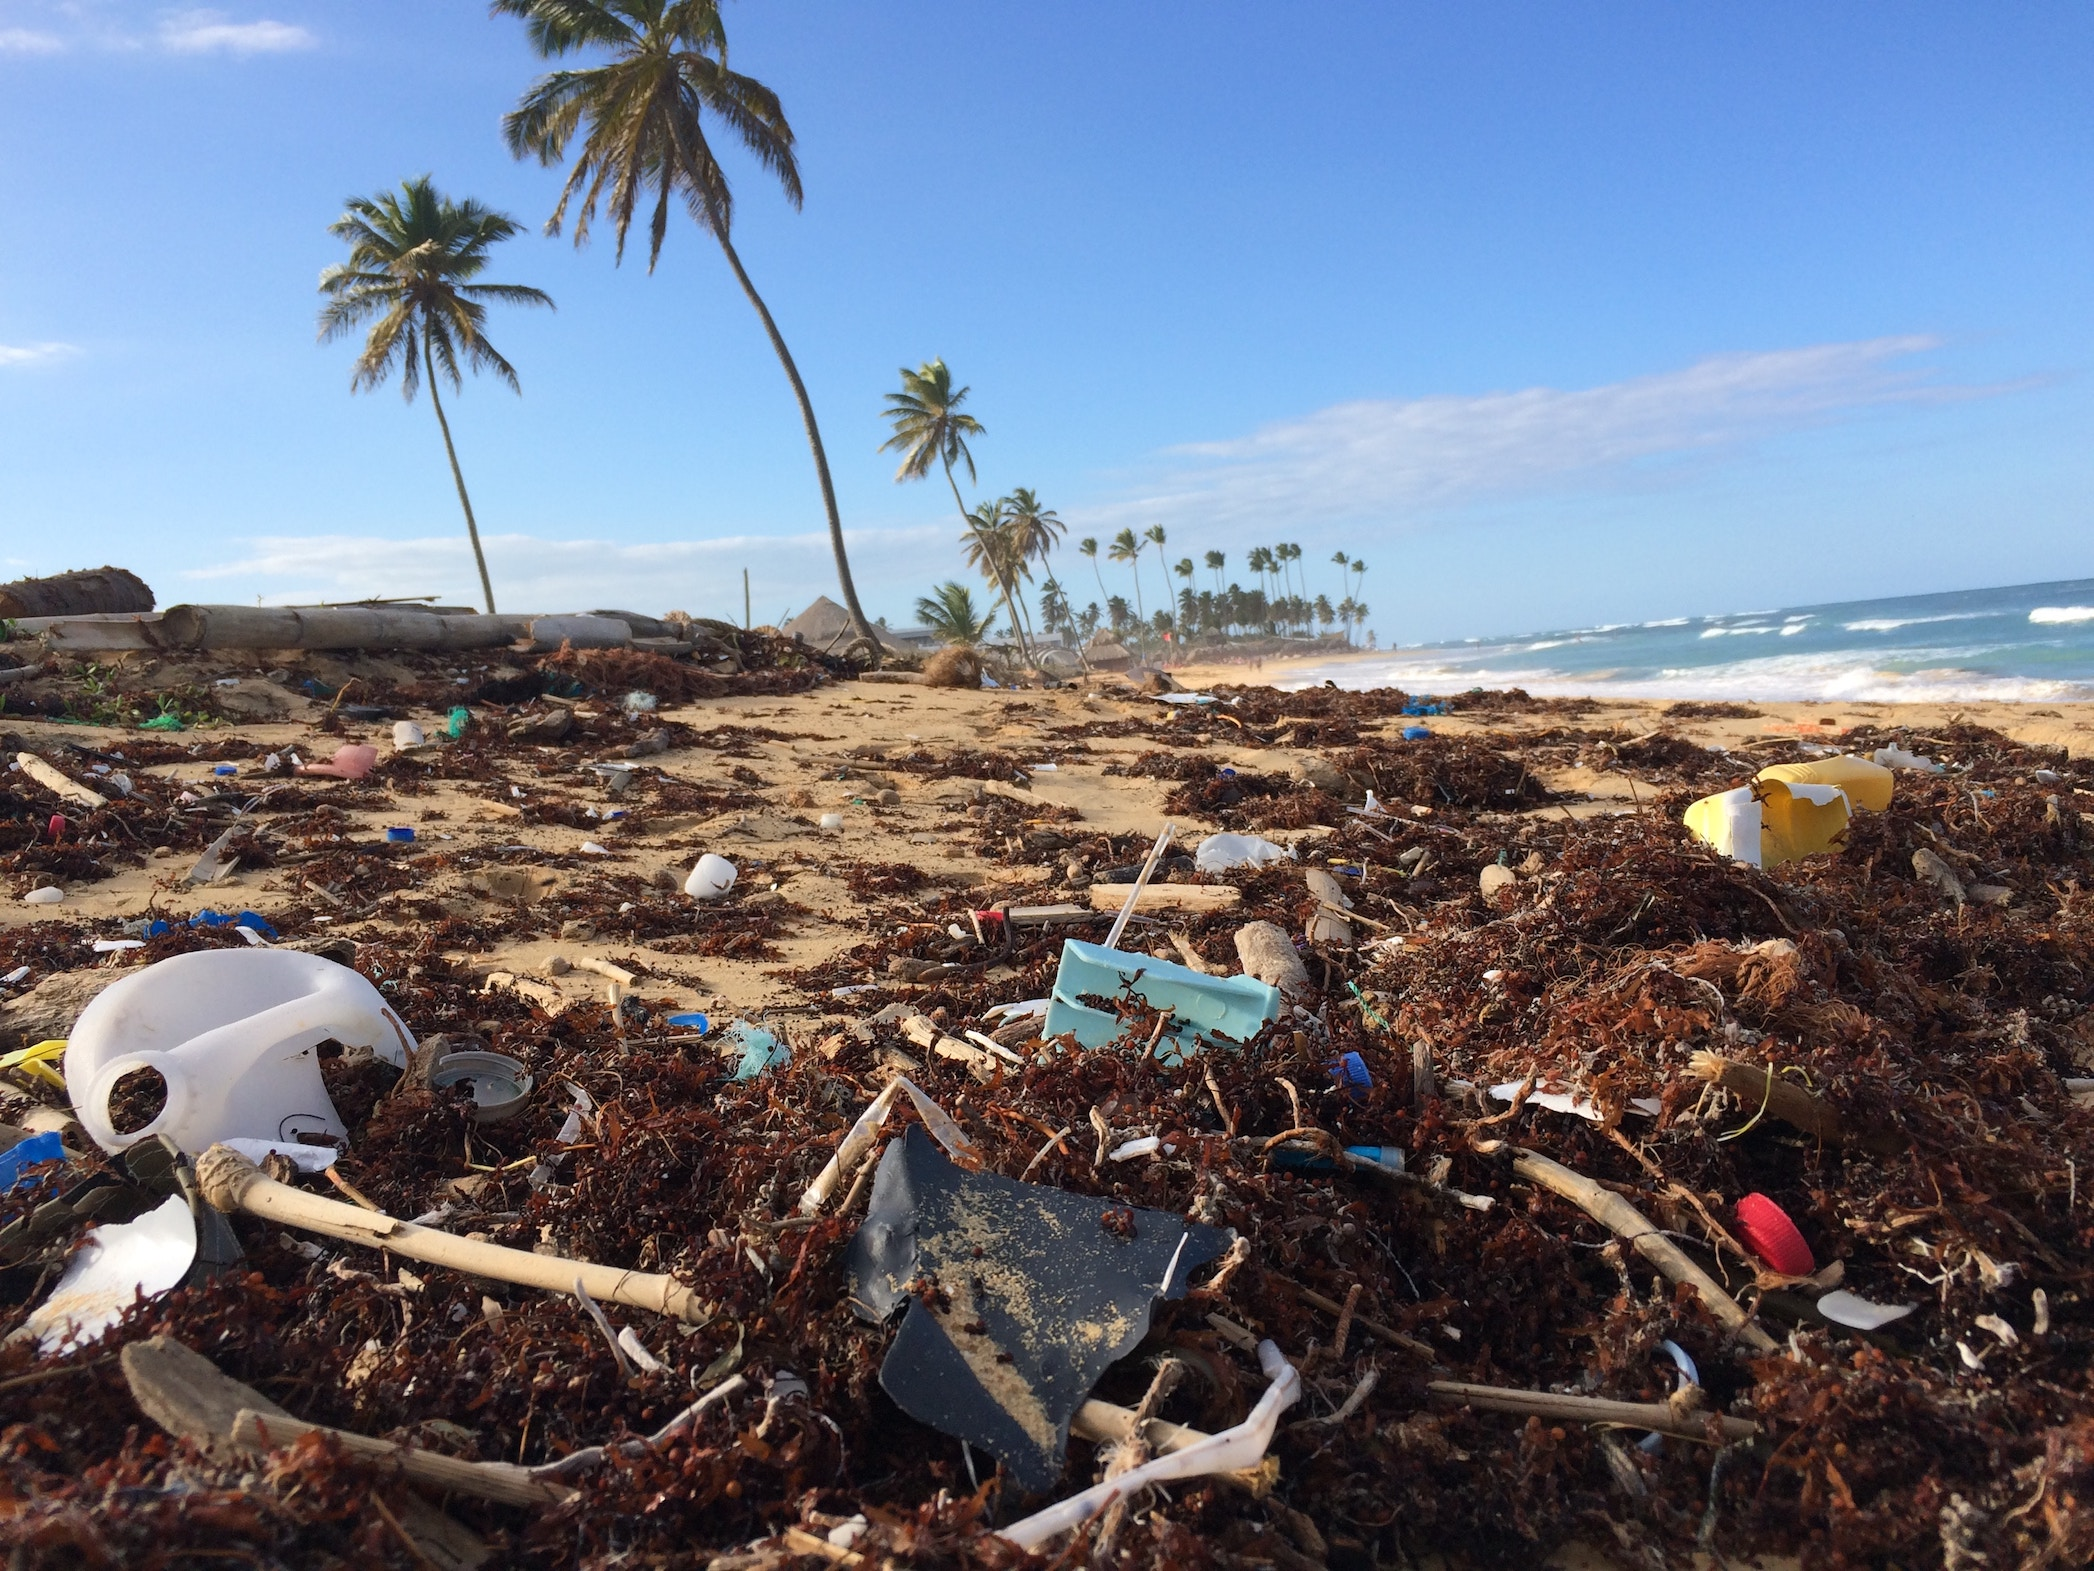 Ocean pollution: plastic straw ban